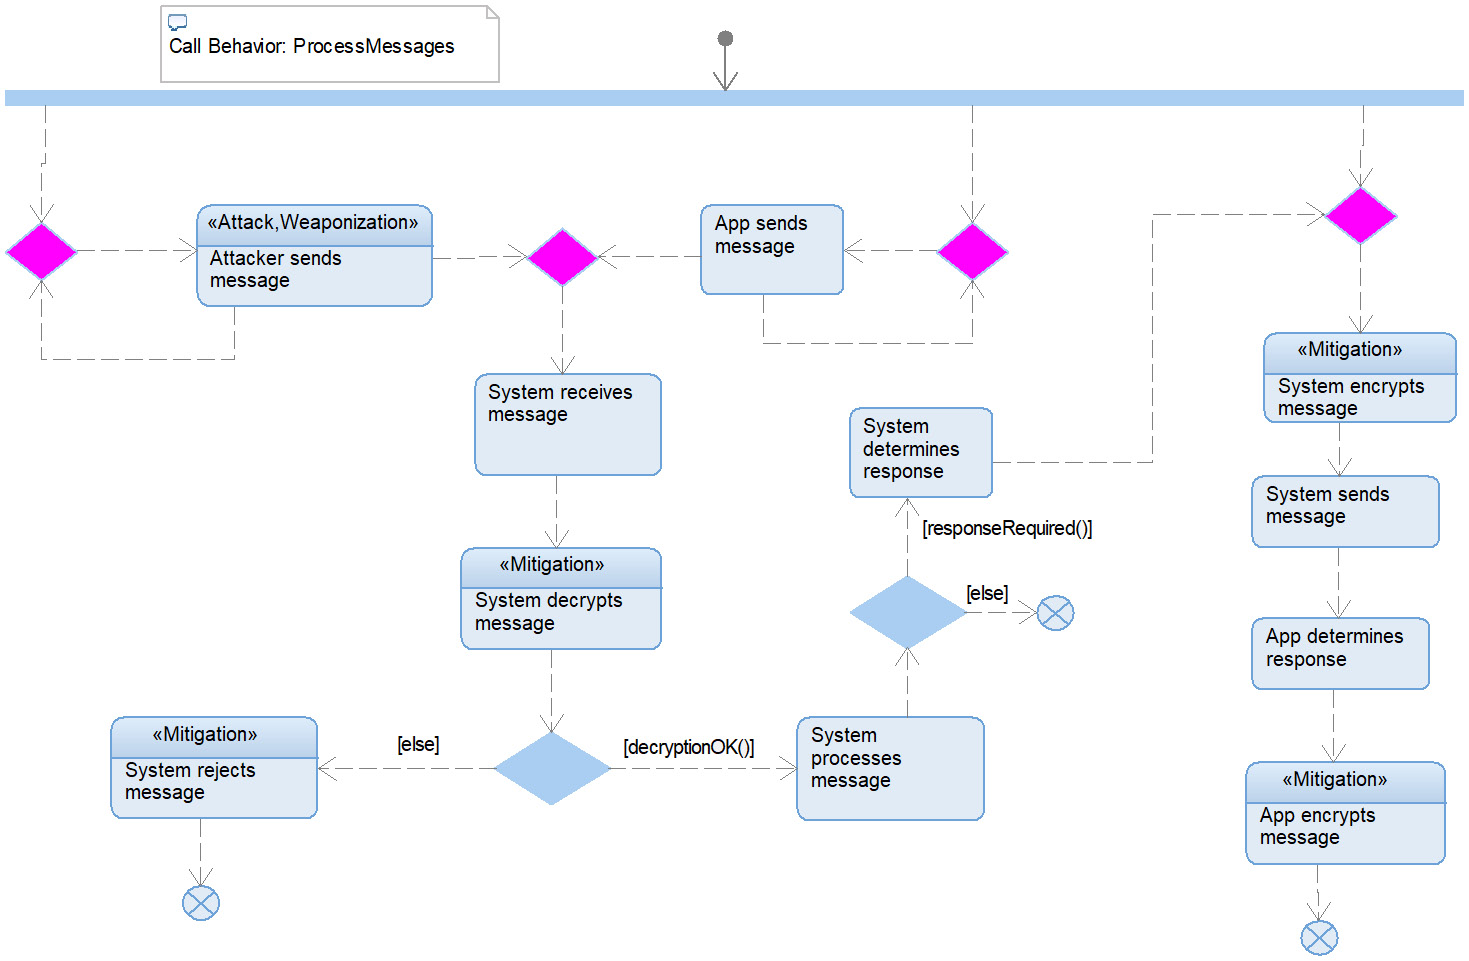 Figure 2.71 – Process Messages attack chain